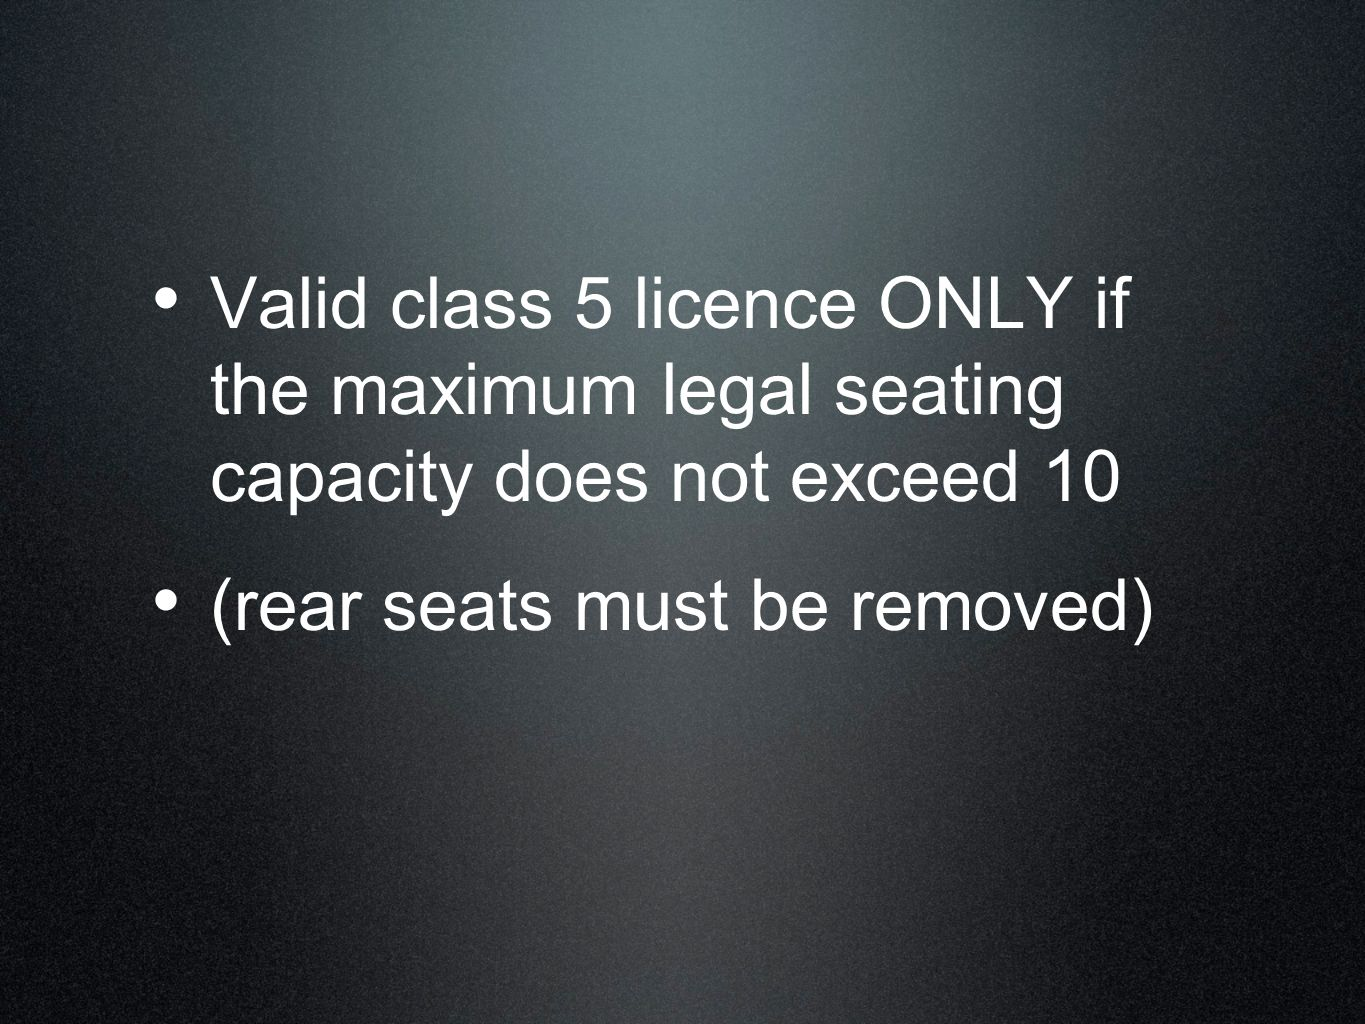 Valid class 5 licence ONLY if the maximum legal seating capacity does not exceed 10 (rear seats must be removed)